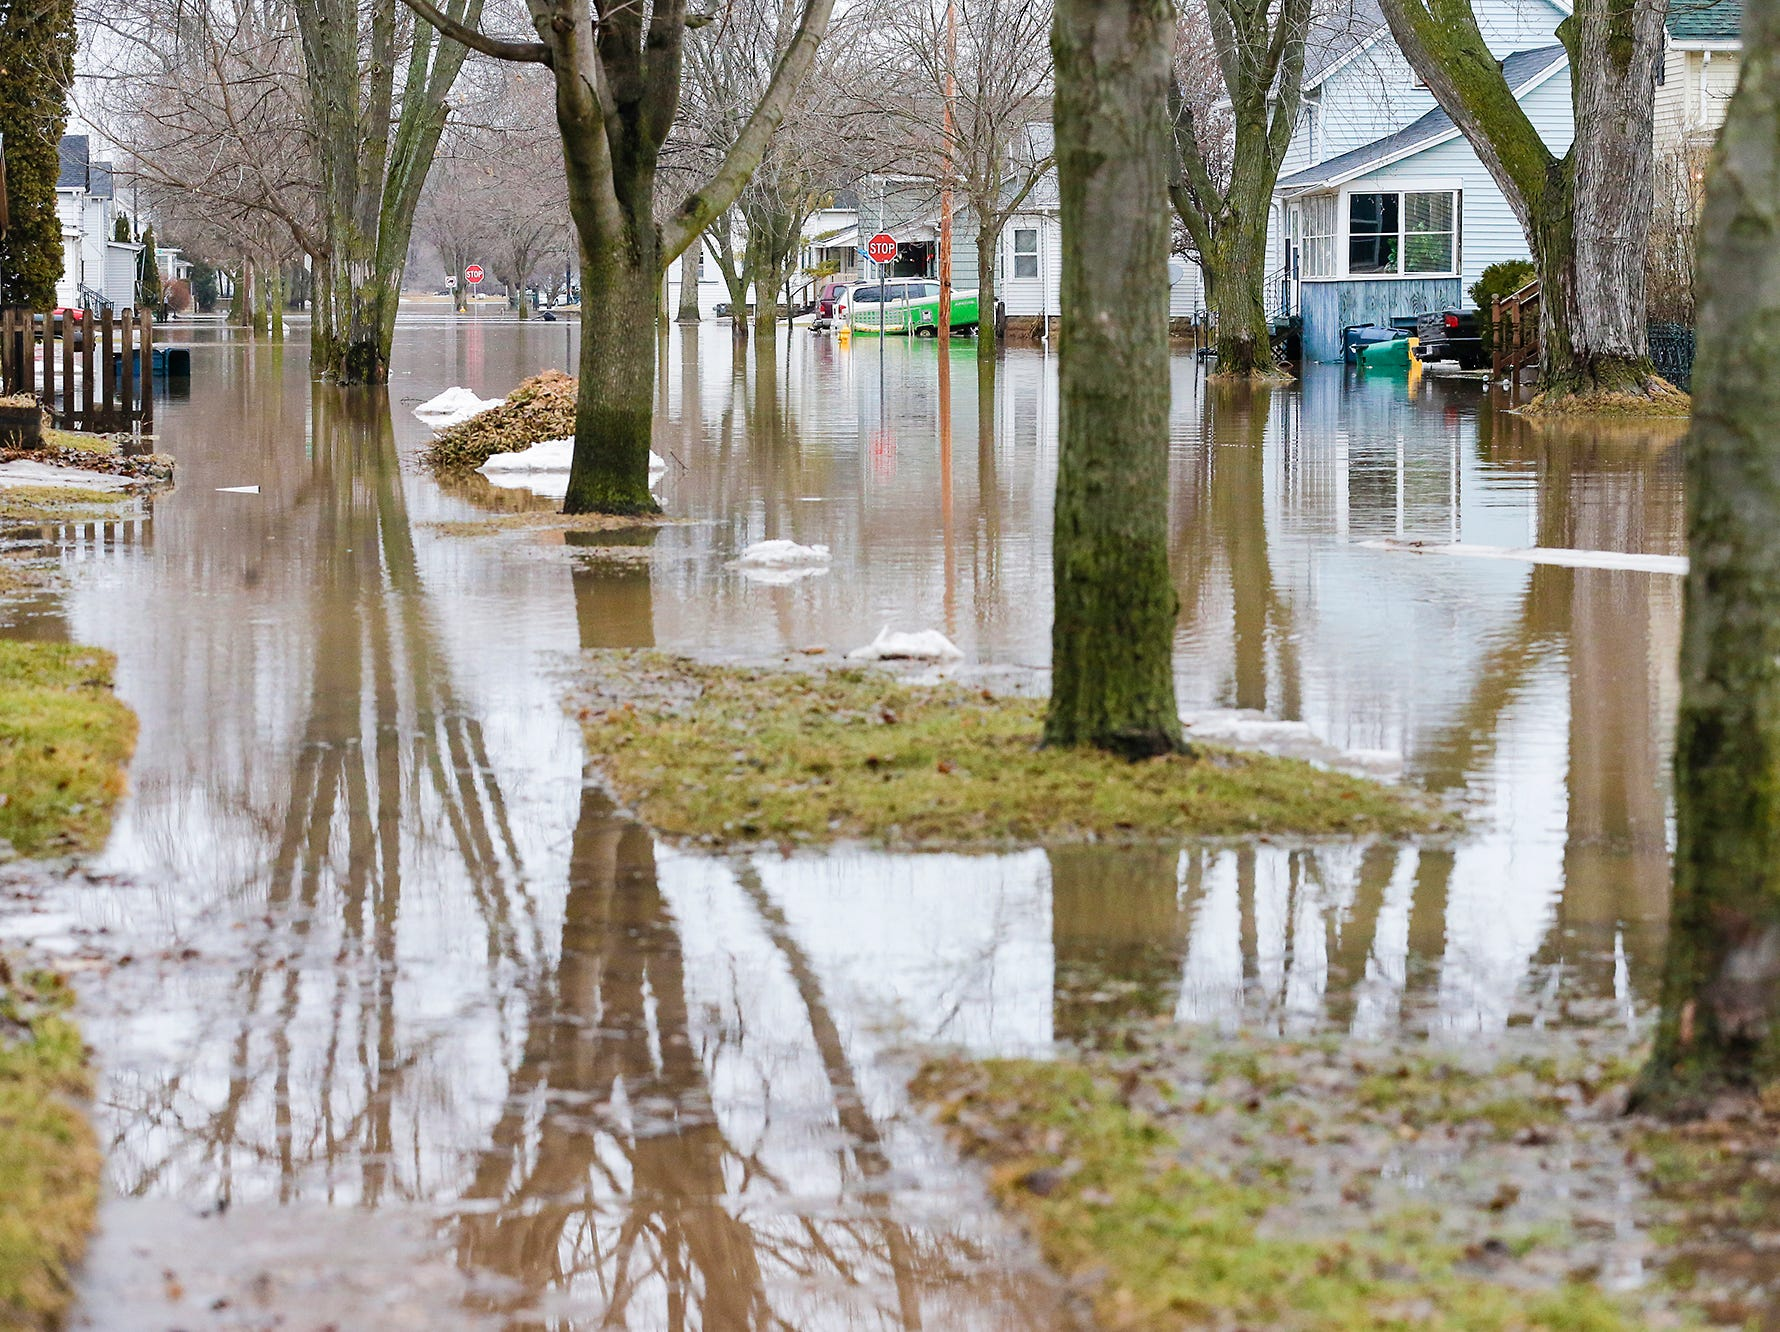 Floodwaters remain Friday, March 15, 2019 in the 100 block of Chestnut Street in Fond du Lac, Wisconsin. Ice jams on the east branch of the Fond du Lac River and heavy rain caused widespread flooding problems in the city on Thursday the 14th. Doug Raflik/USA TODAY NETWORK-Wisconsin